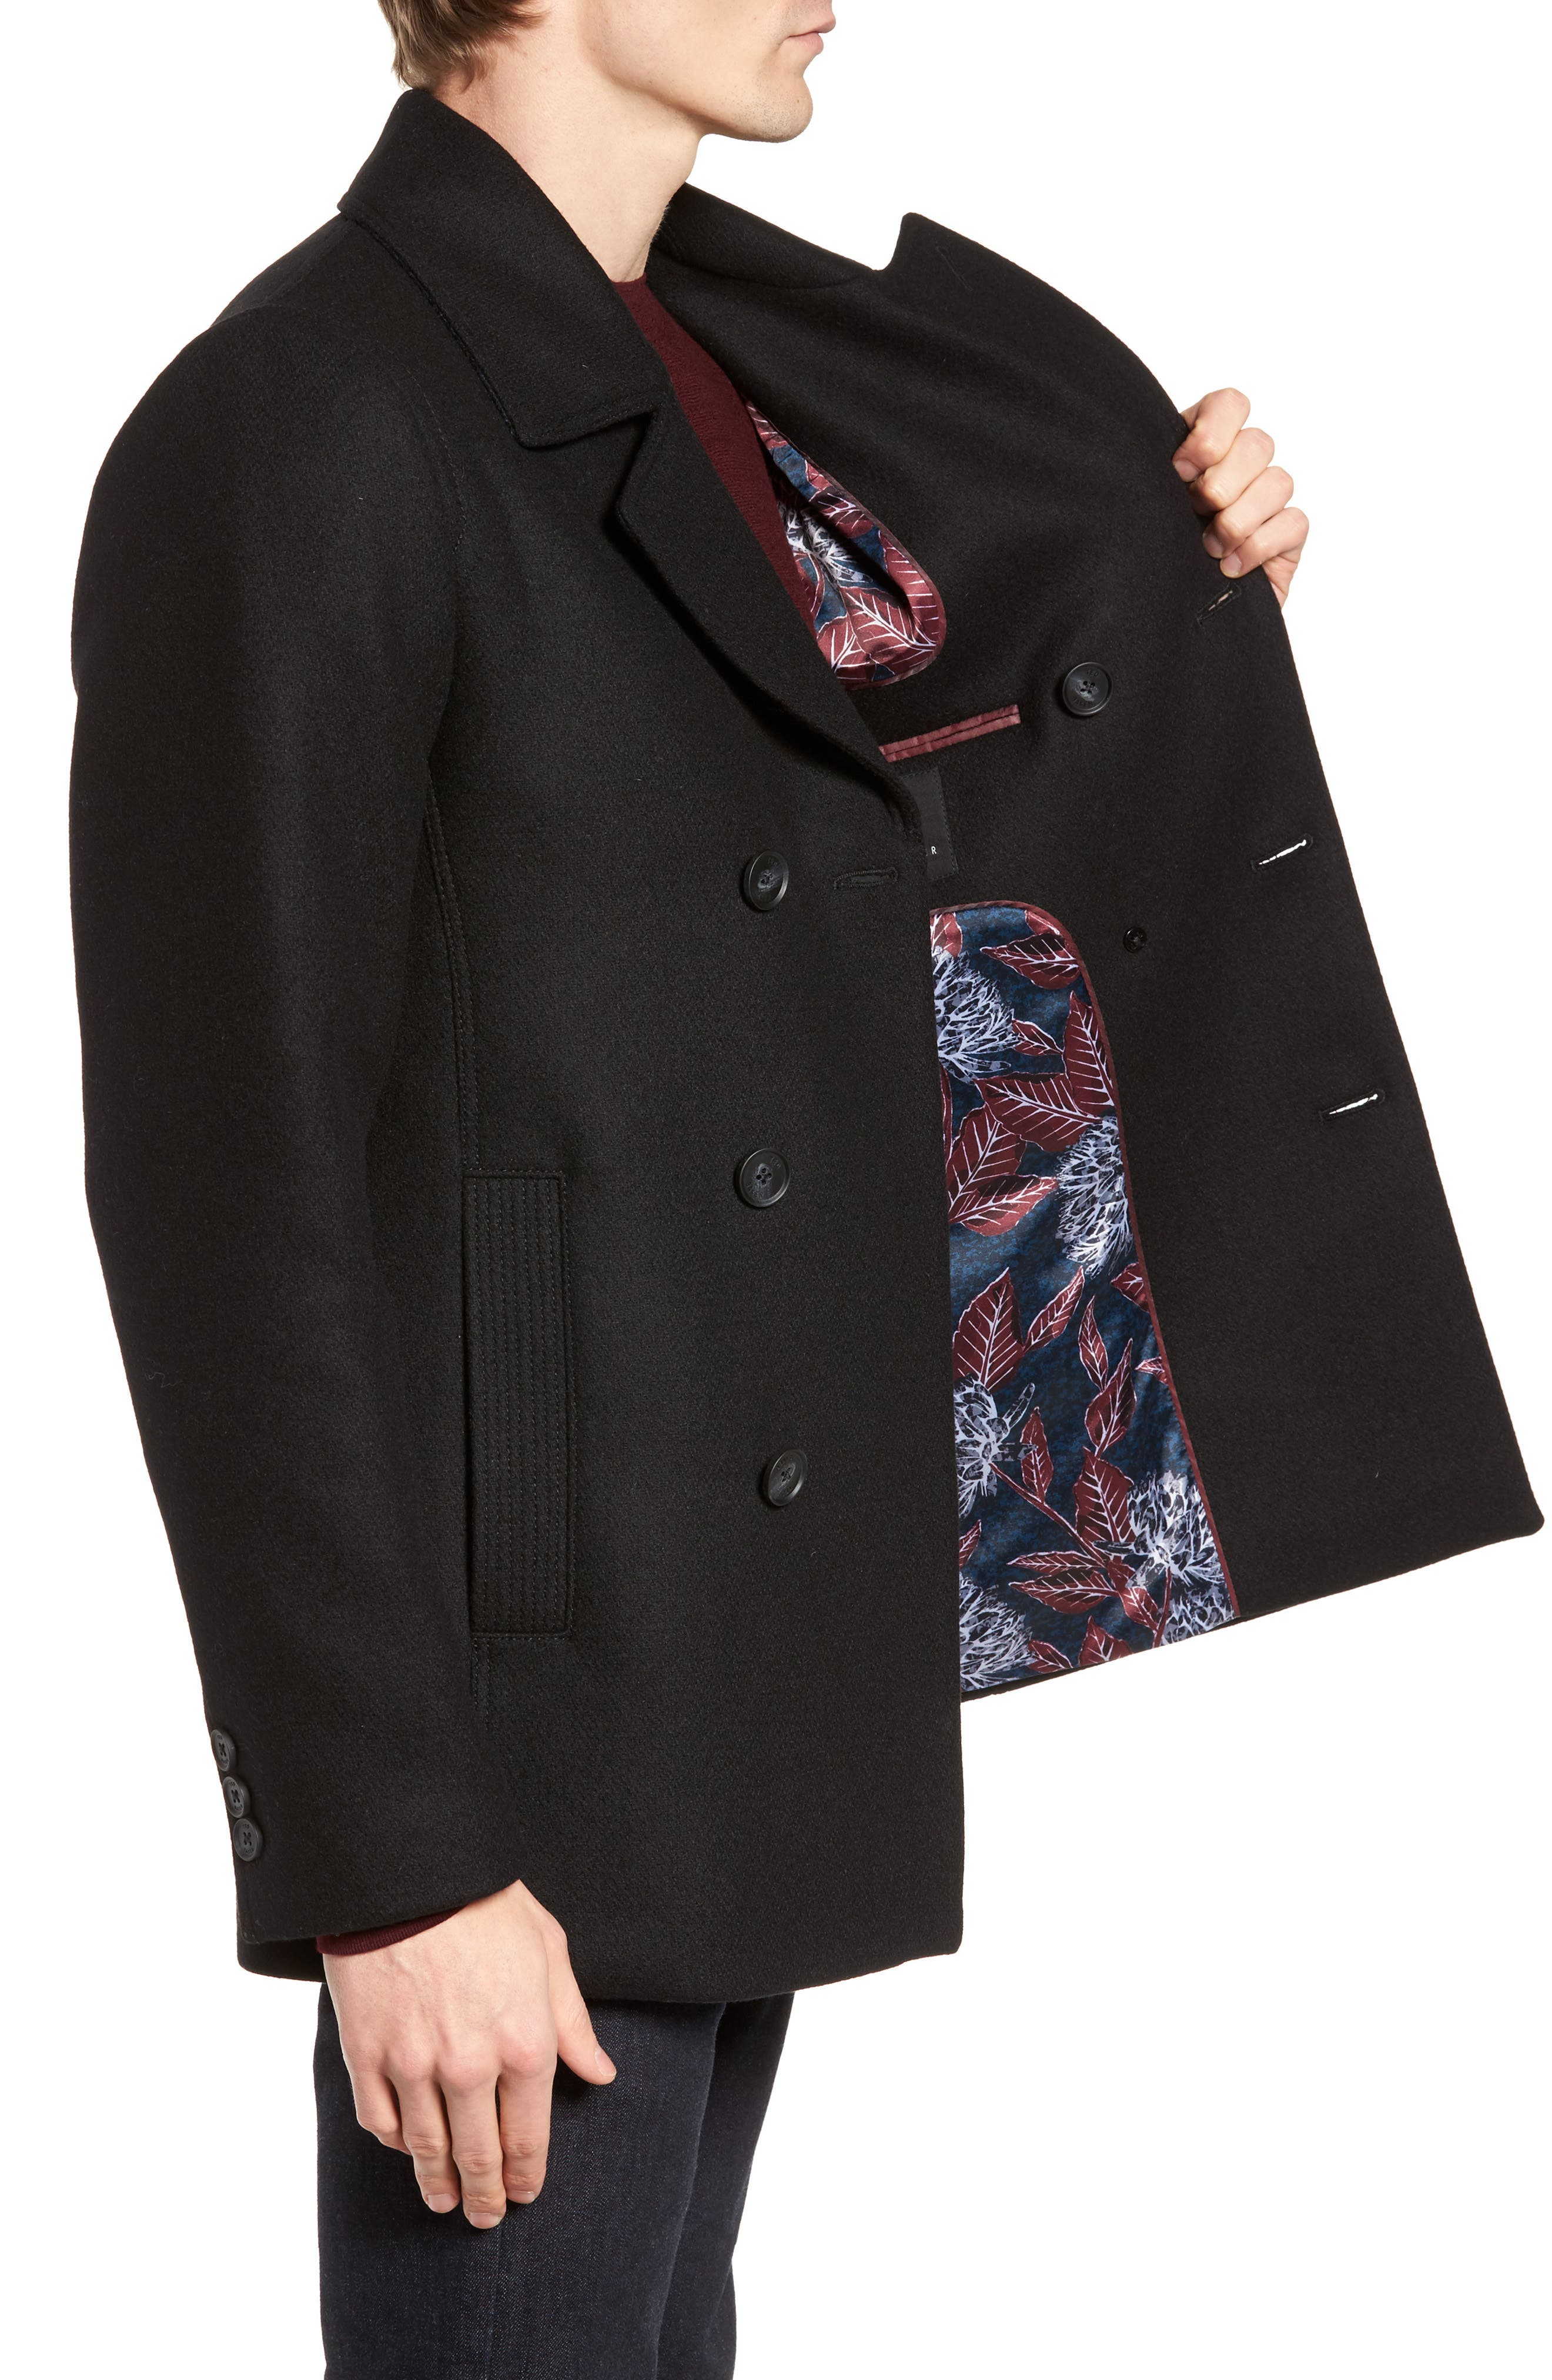 Zachary Trim Fit Double Breasted Peacoat,                             Alternate thumbnail 3, color,                             001